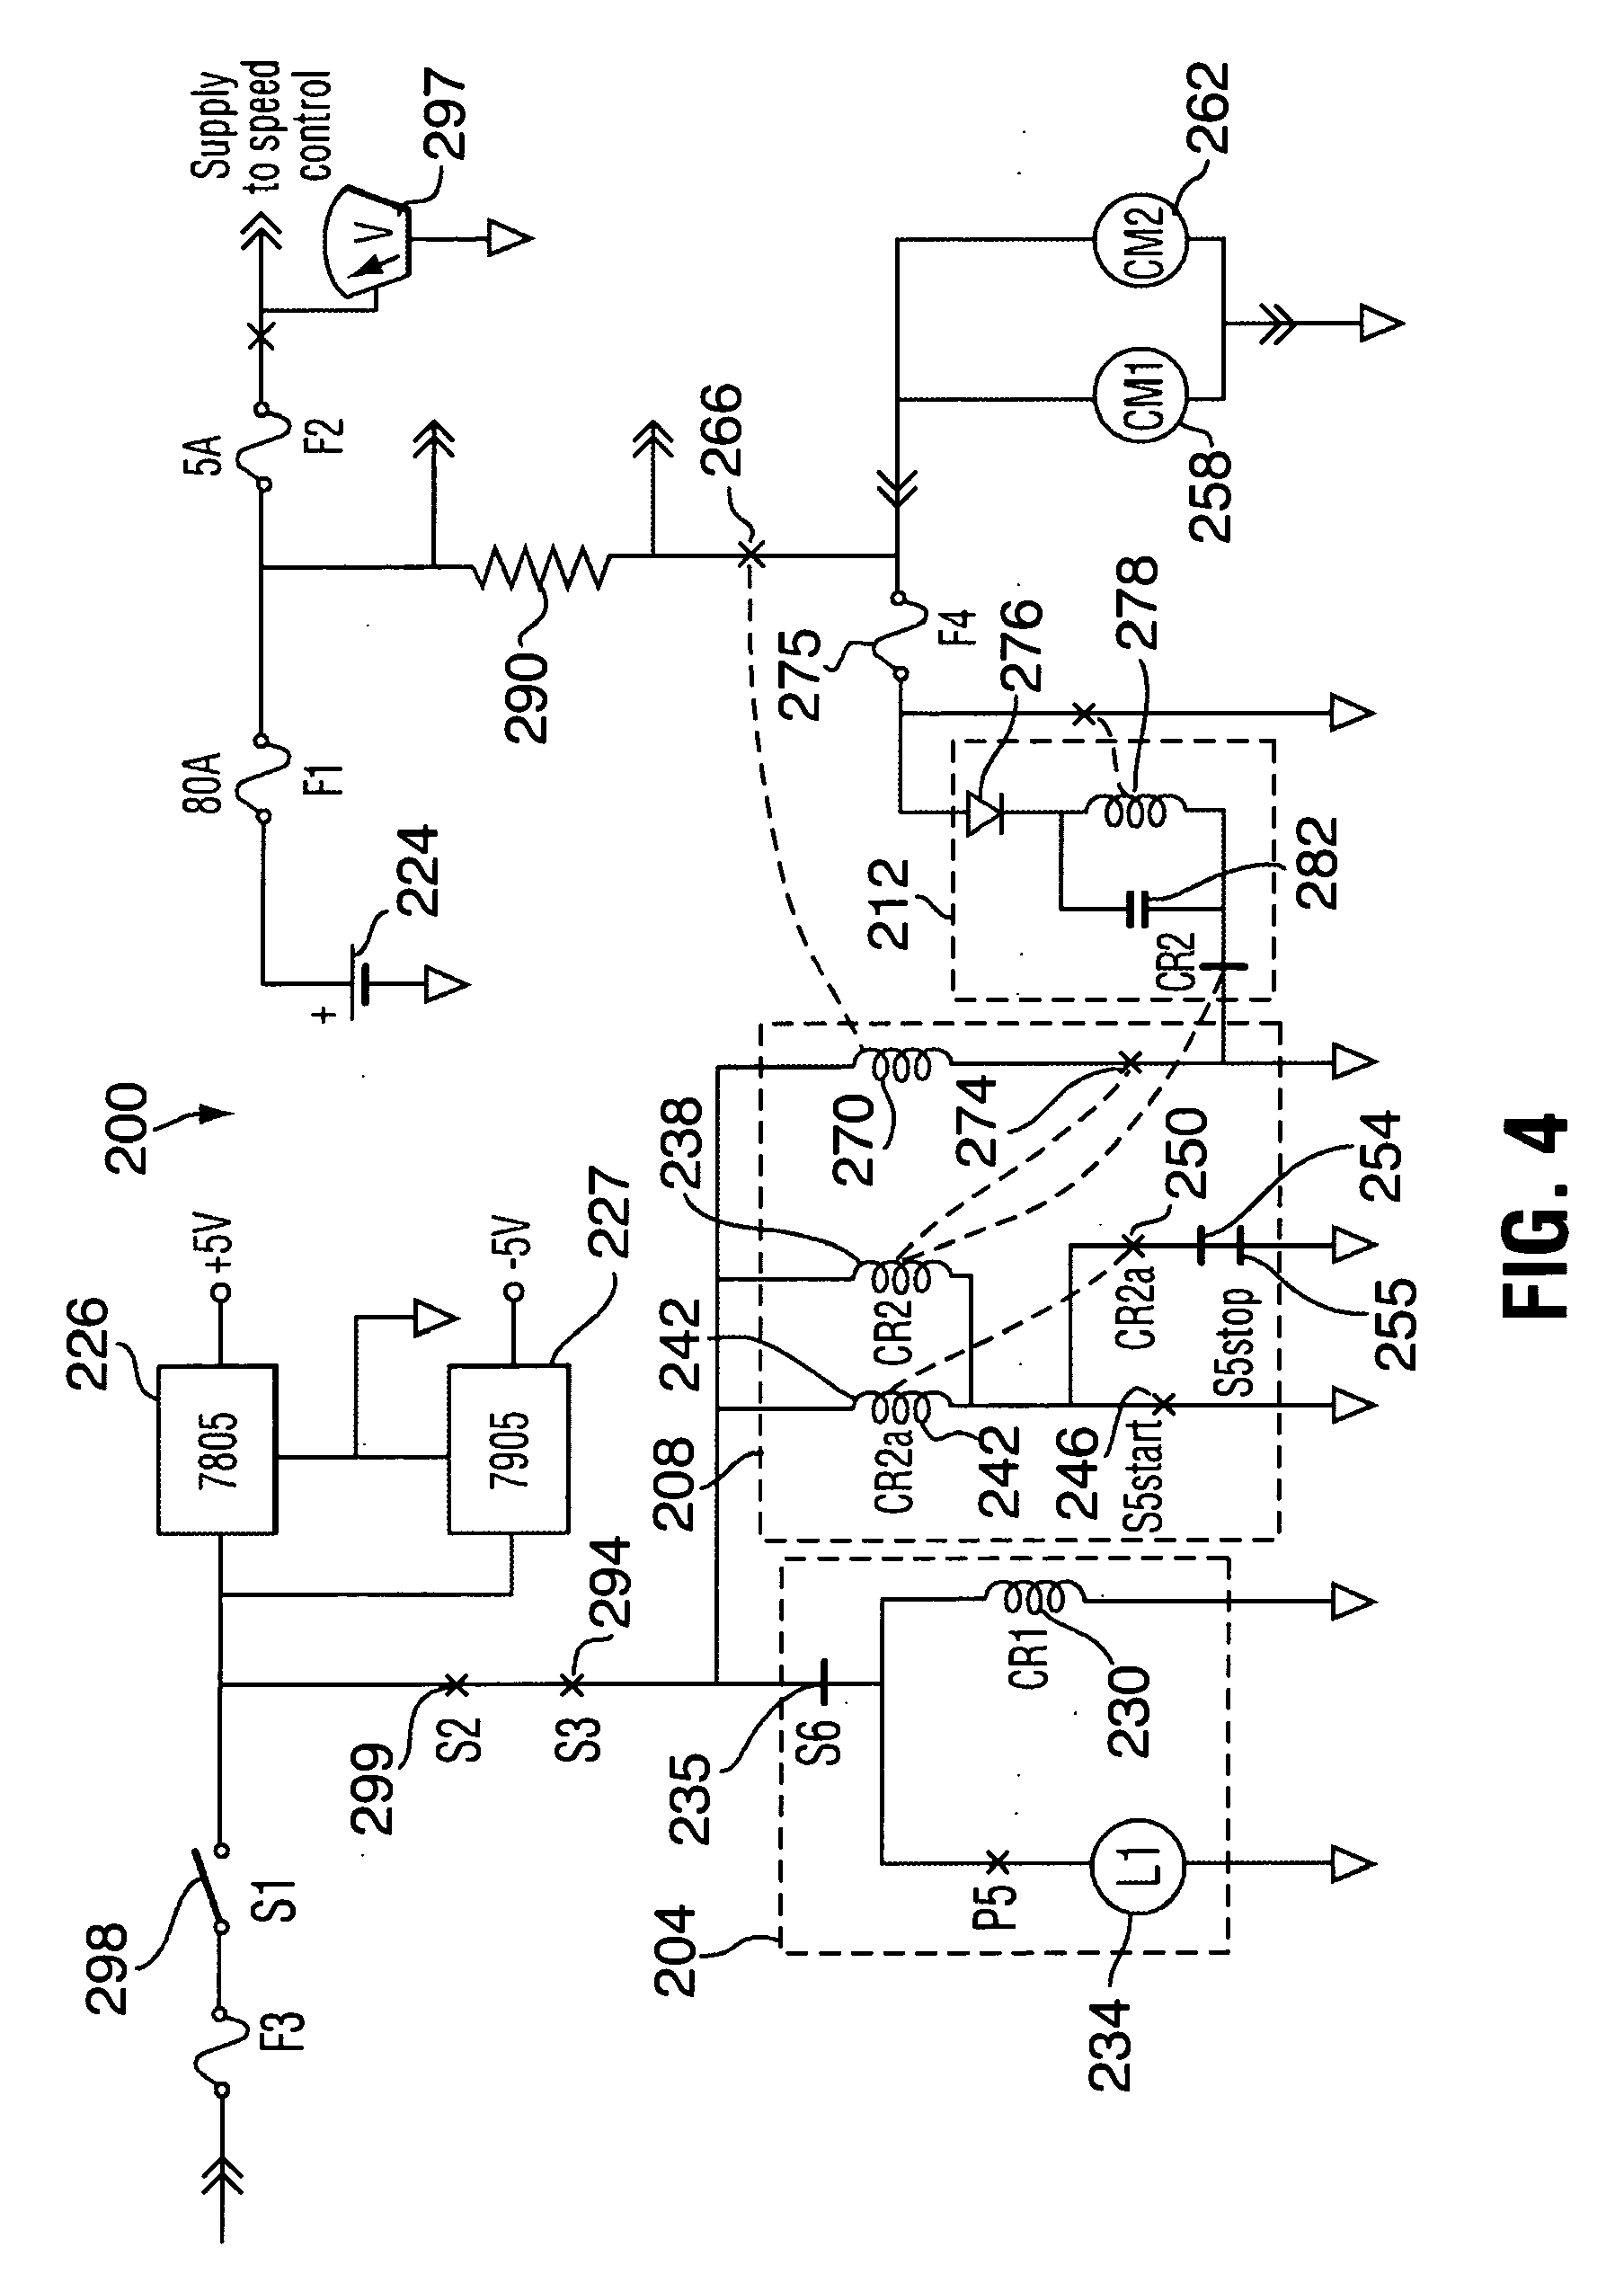 Wiring Diagram For International Hydro 100. Wiring. Wiring